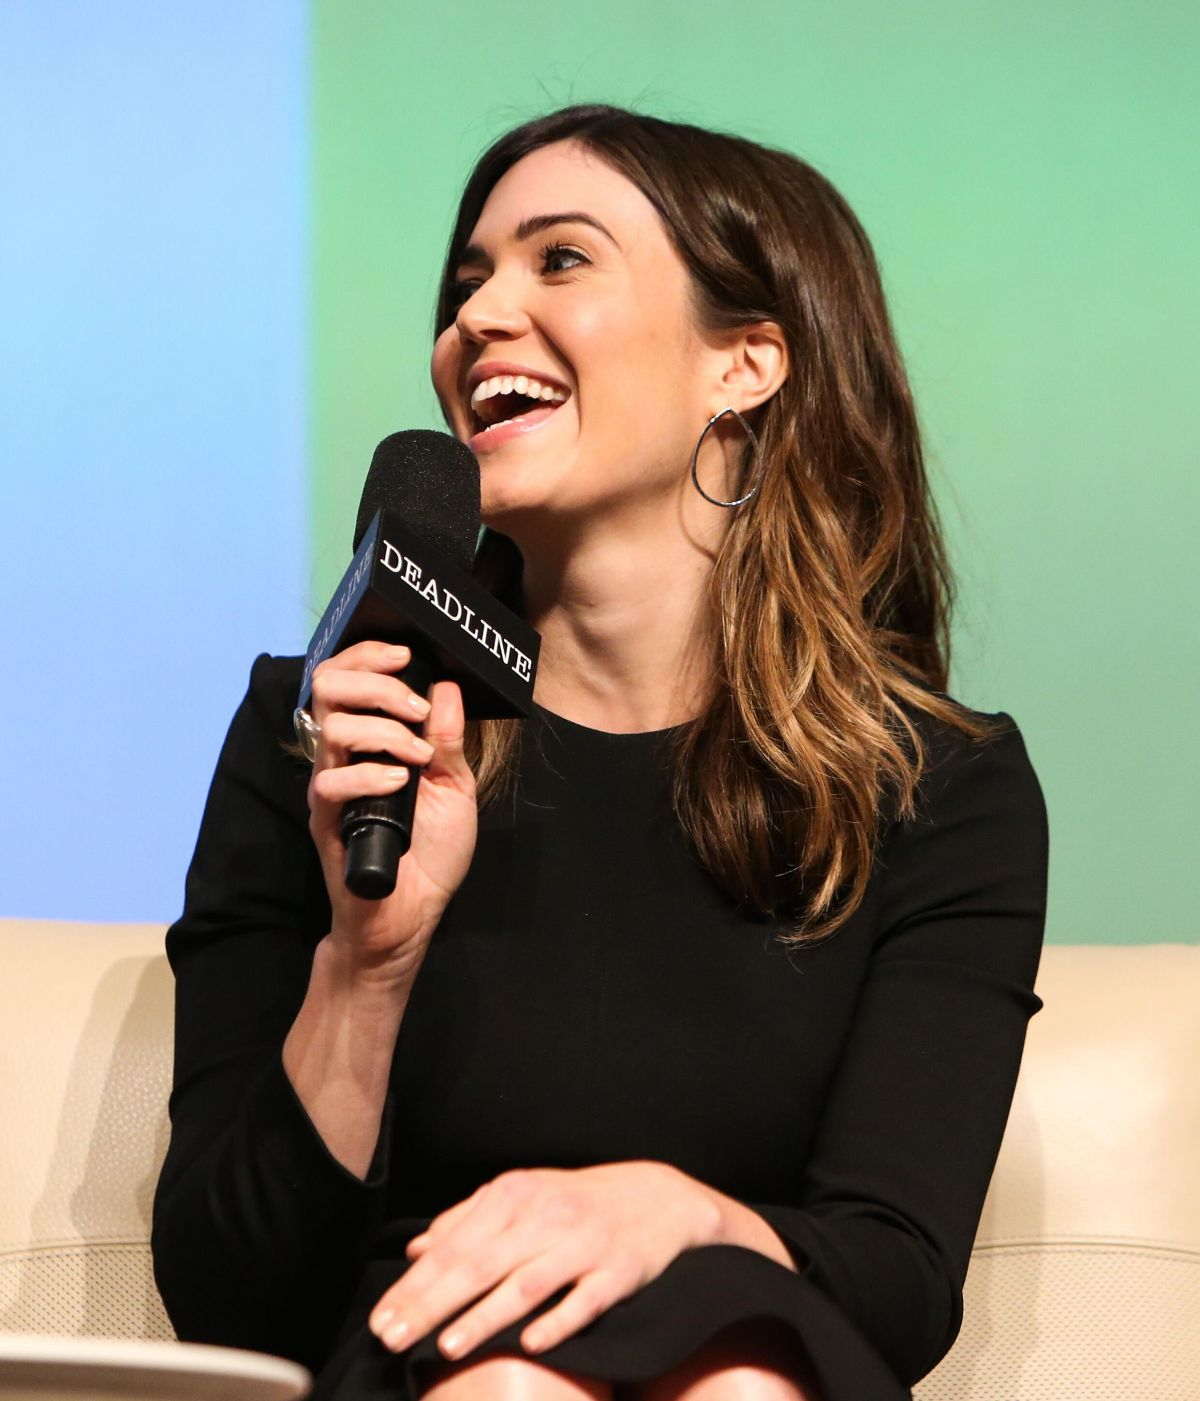 Mandy Moore At The Contenders Emmys, presented by Deadline in LA   mandy-moore-at-the-contenders-emmys-presented-by-deadline-in-la_6